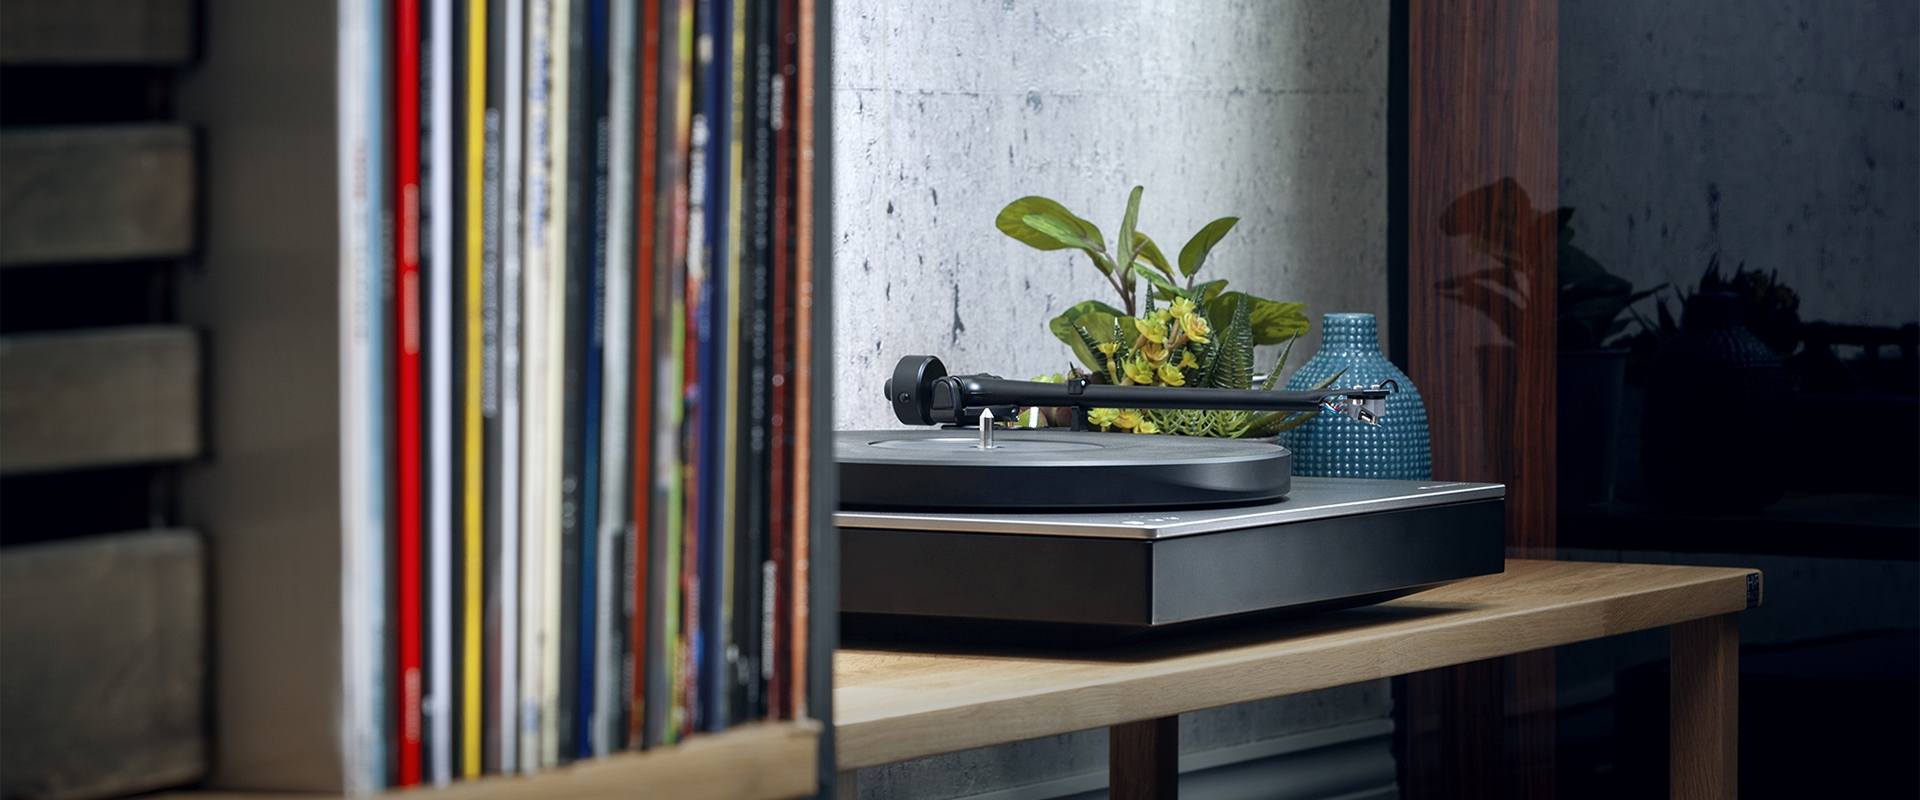 The Best Hi-fi Setup for Your Record Player